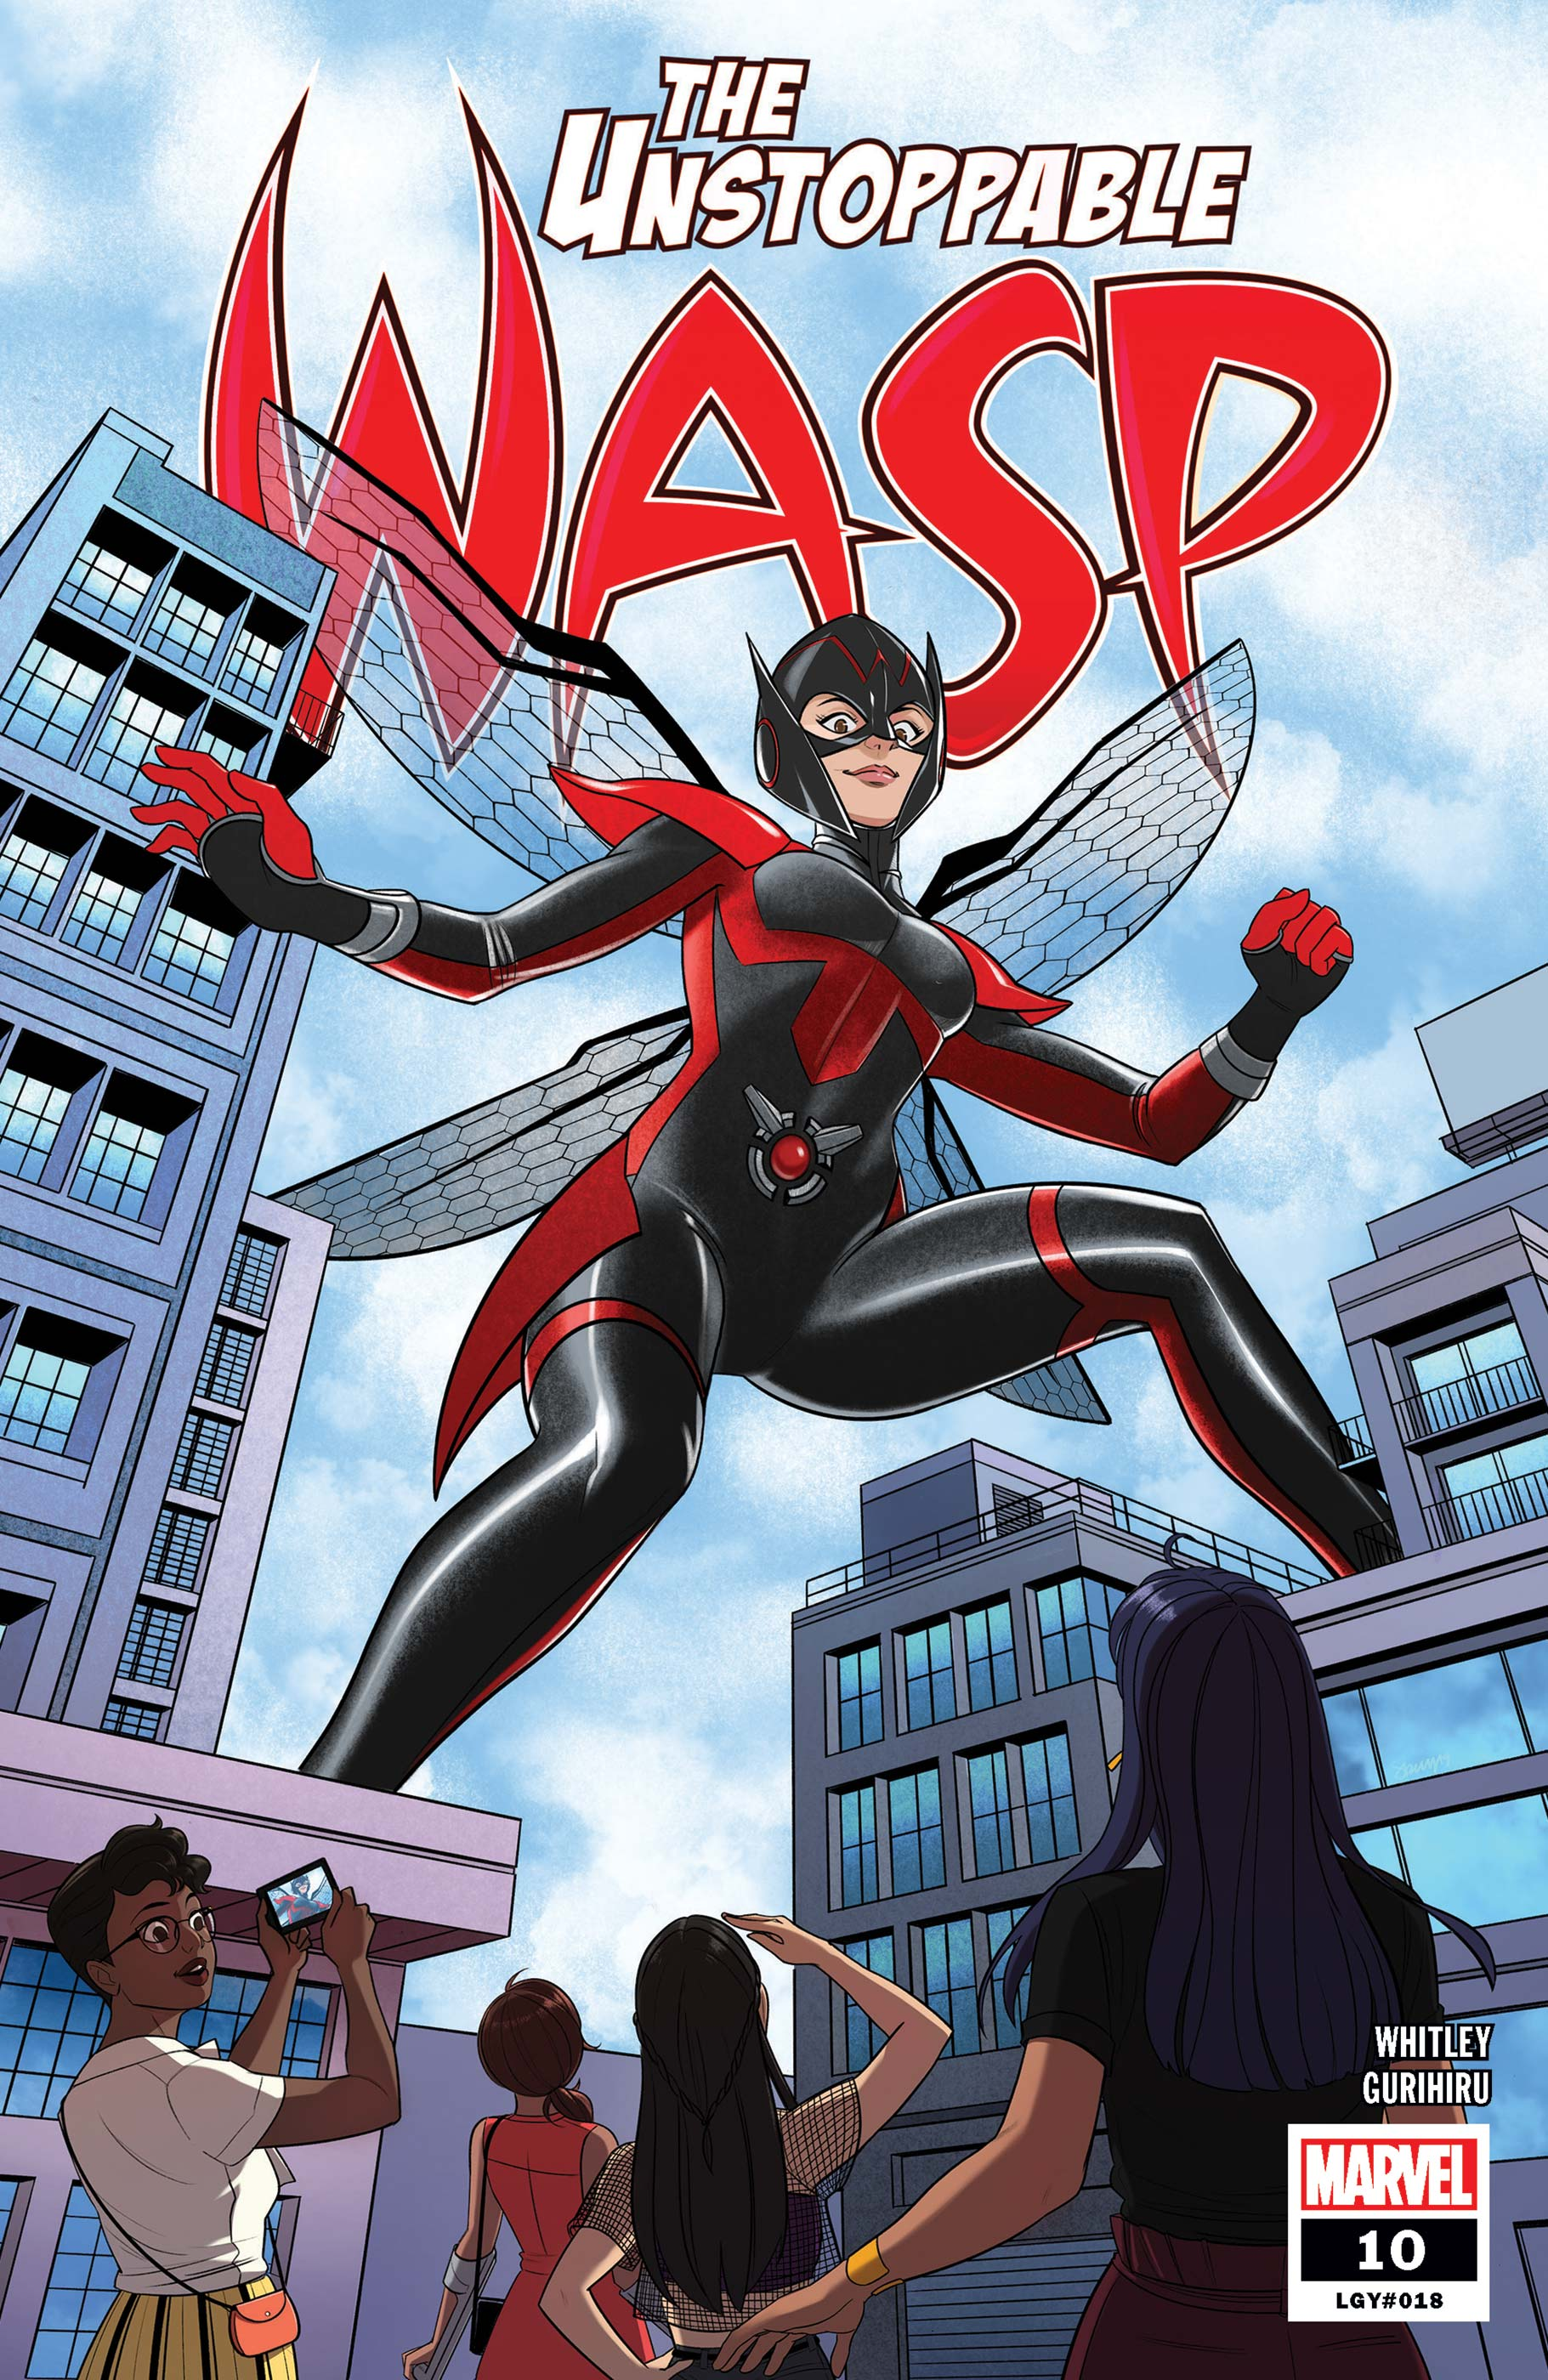 The Unstoppable Wasp (2018) #10